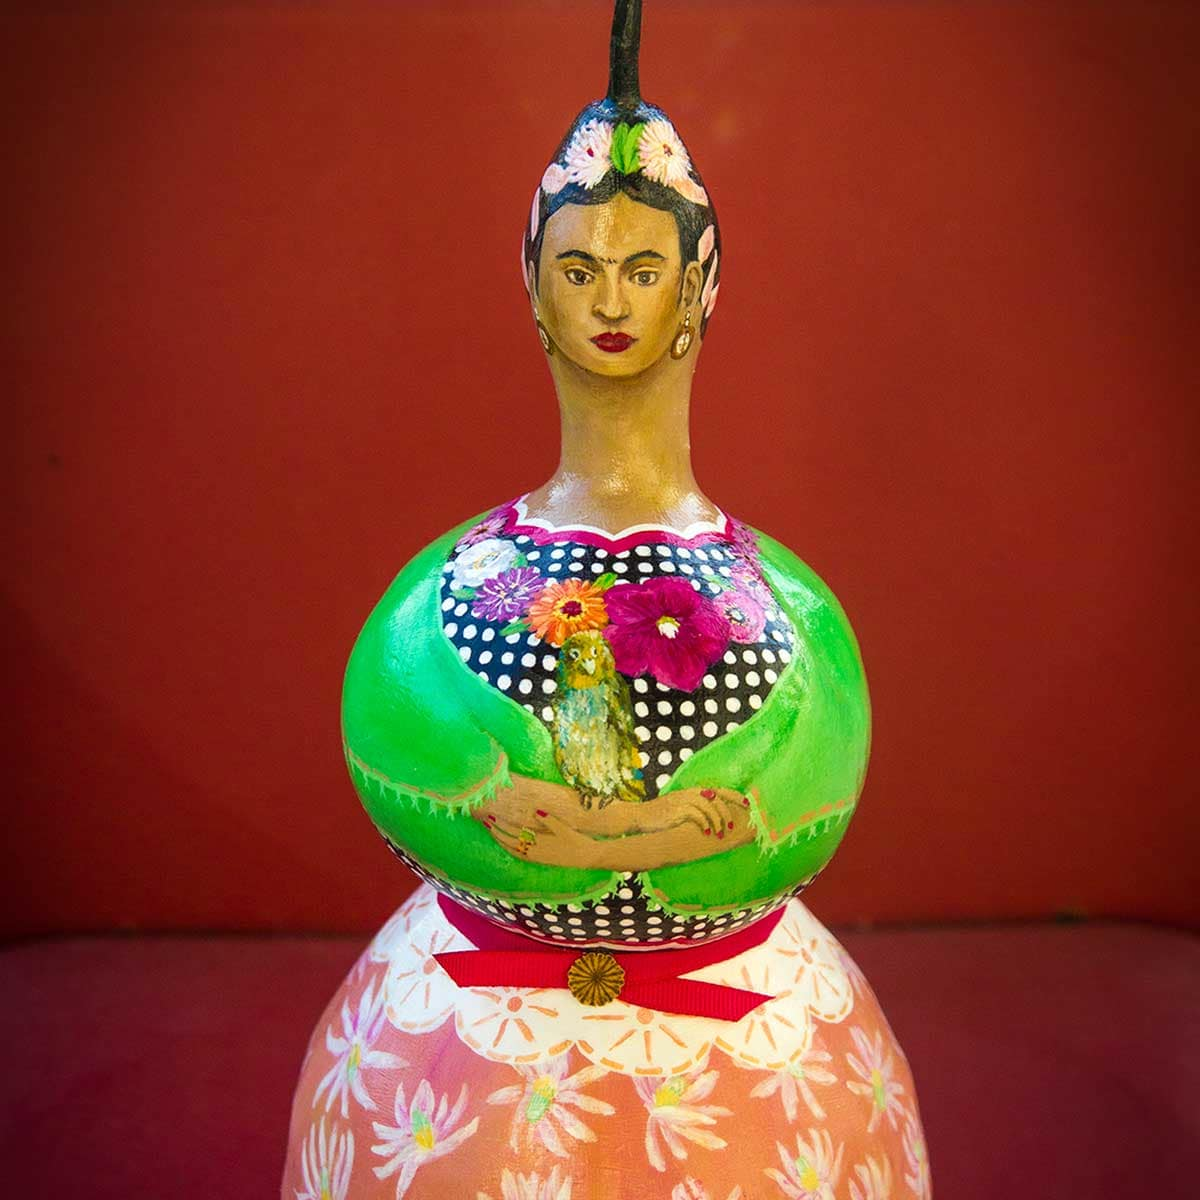 Photo of painted gourd doll created by Allee Brand